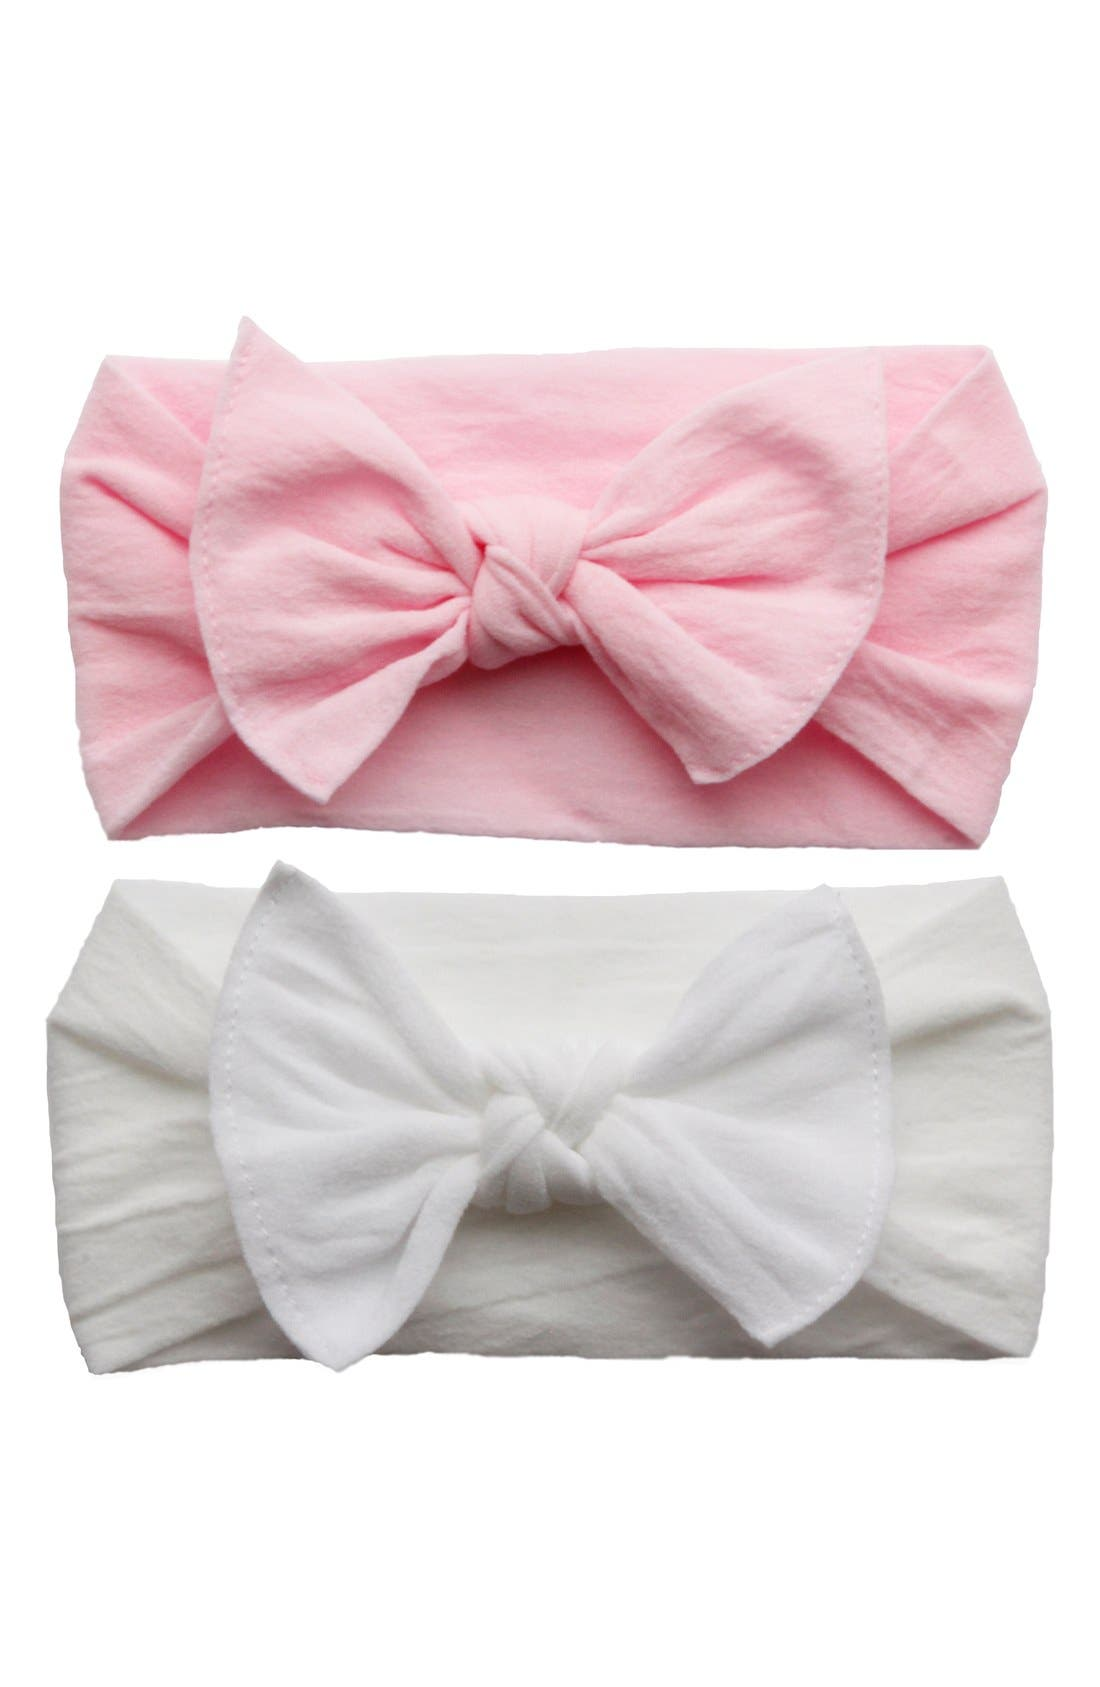 Main Image - Baby Bling Headbands (2-Pack)